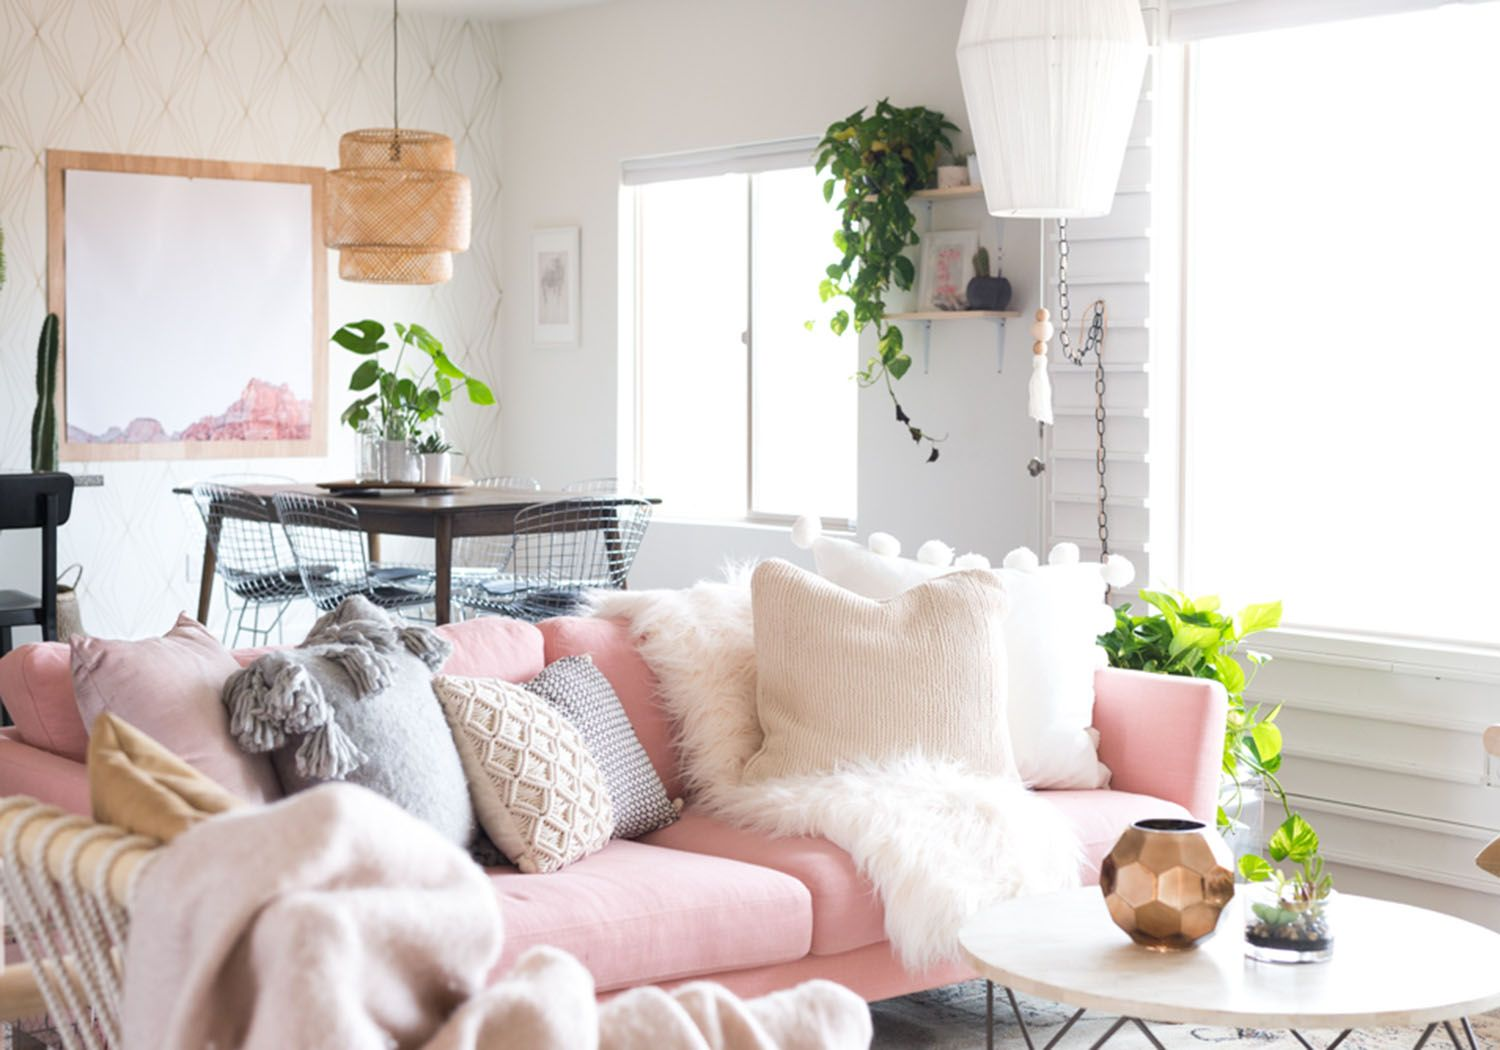 The Top 10 Decor Trends According To Pinterest Minimalist Living Room Design Minimalist Living Room Living Room Designs